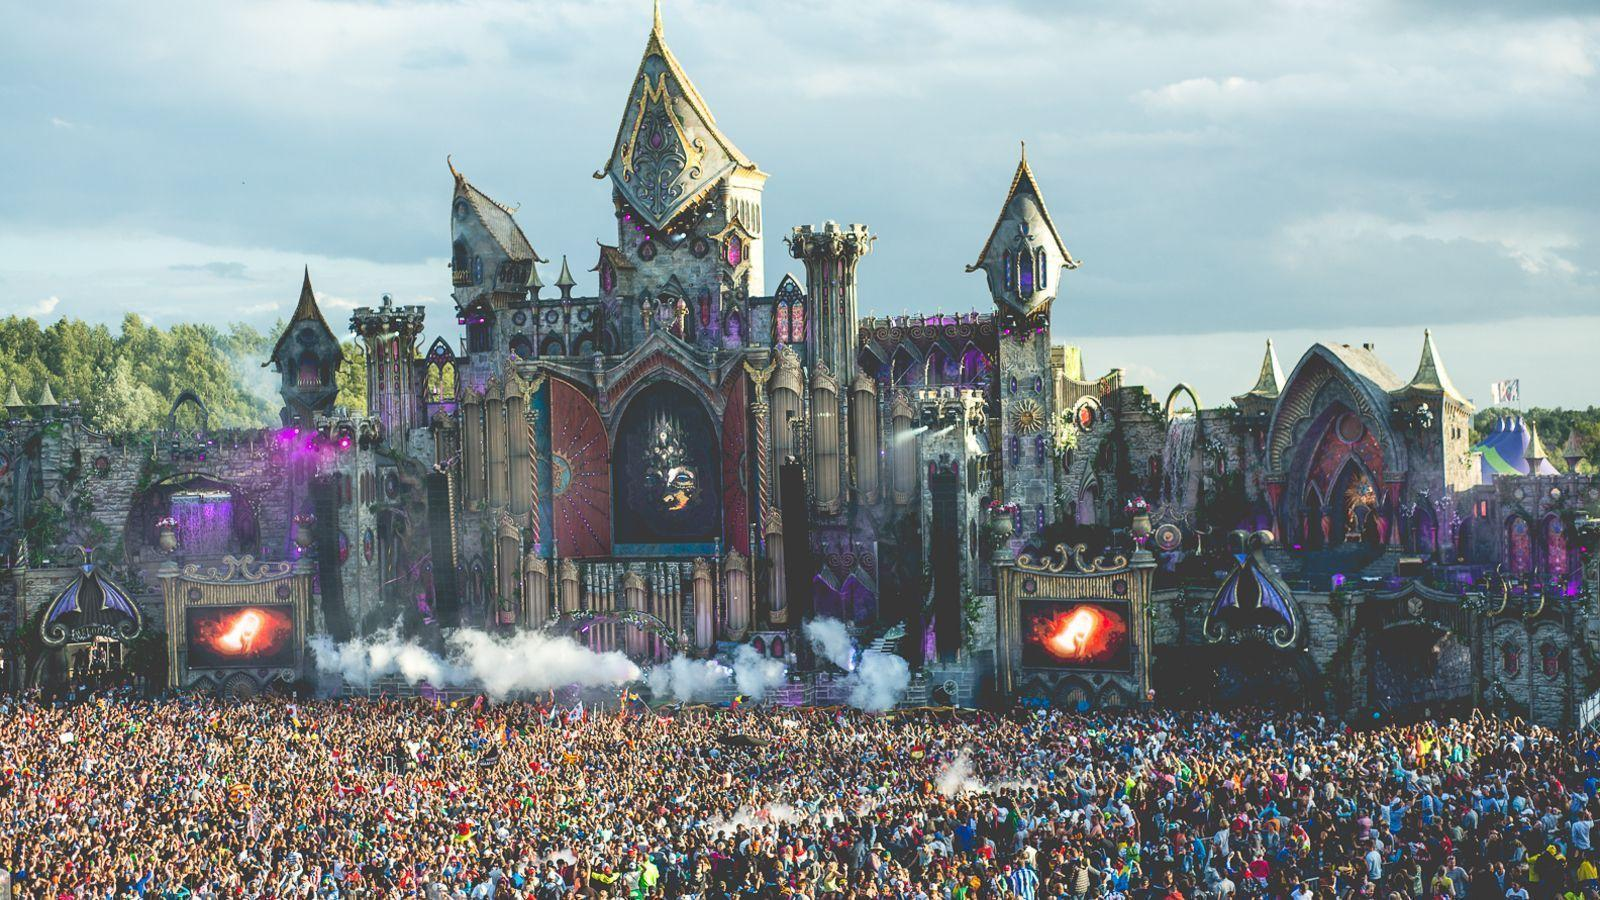 Tomorrowland 2016 Laser Show HD Wallpapers - Wallpaper Cave Tomorrowland 2012 Wallpaper